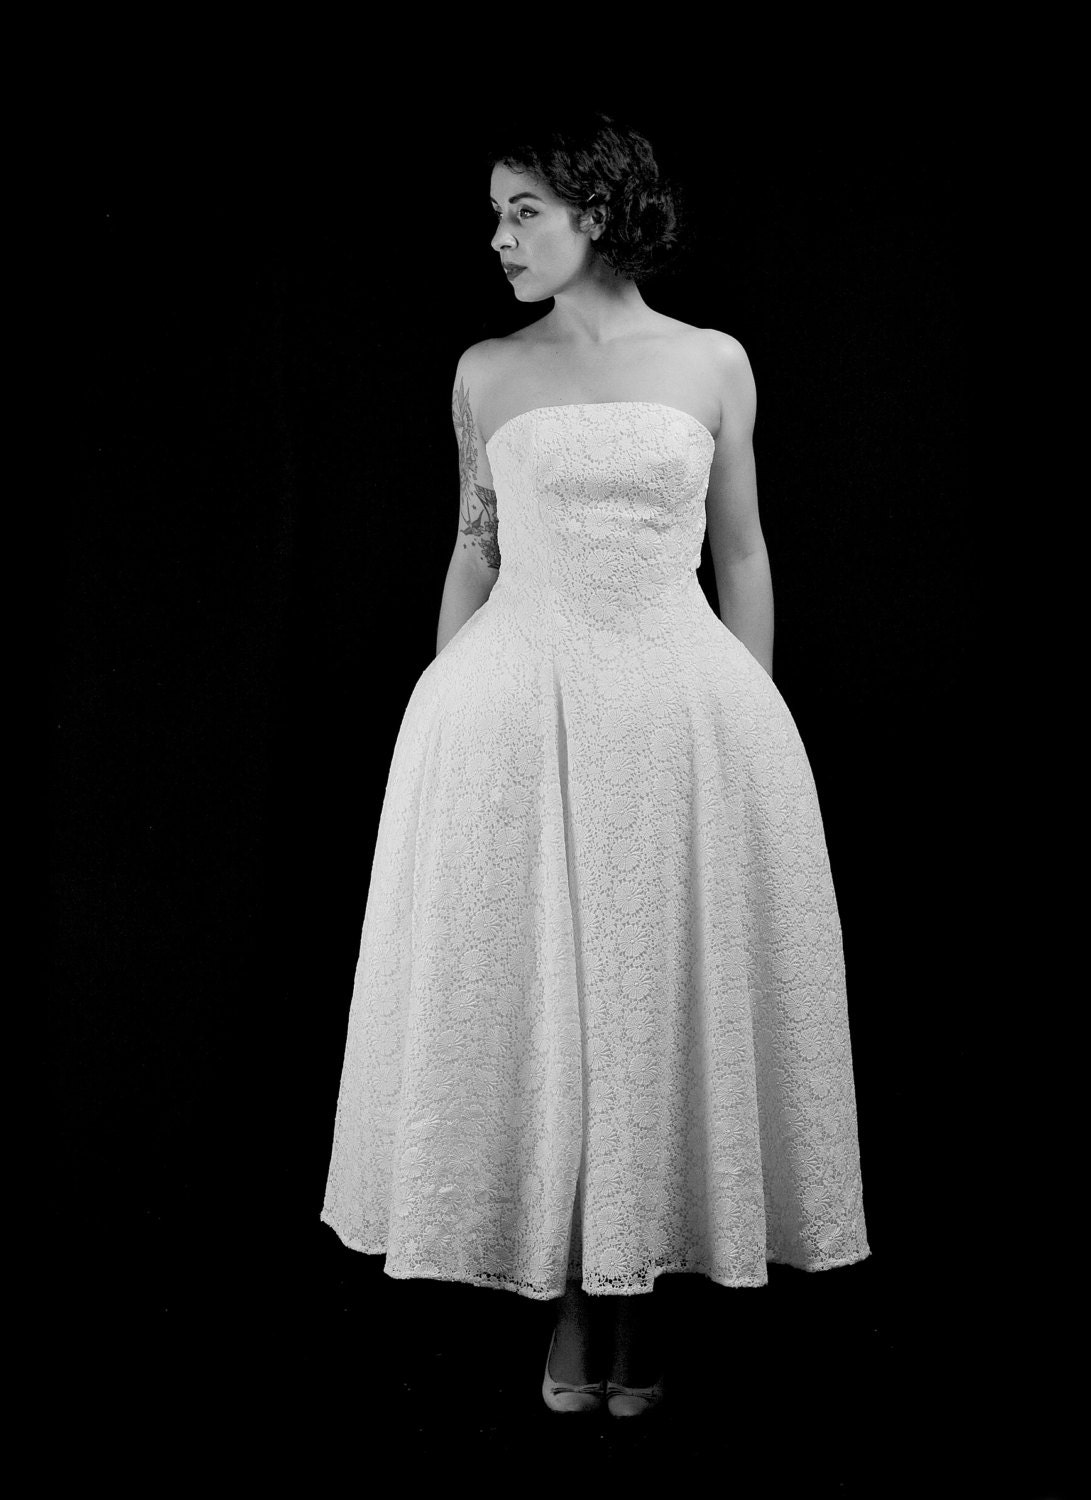 1950s Lace Lace Fashion Article Popularity Of 1950s Lace: 1950 Guipure Lace Ballet Length 1950s Style Wedding Dress